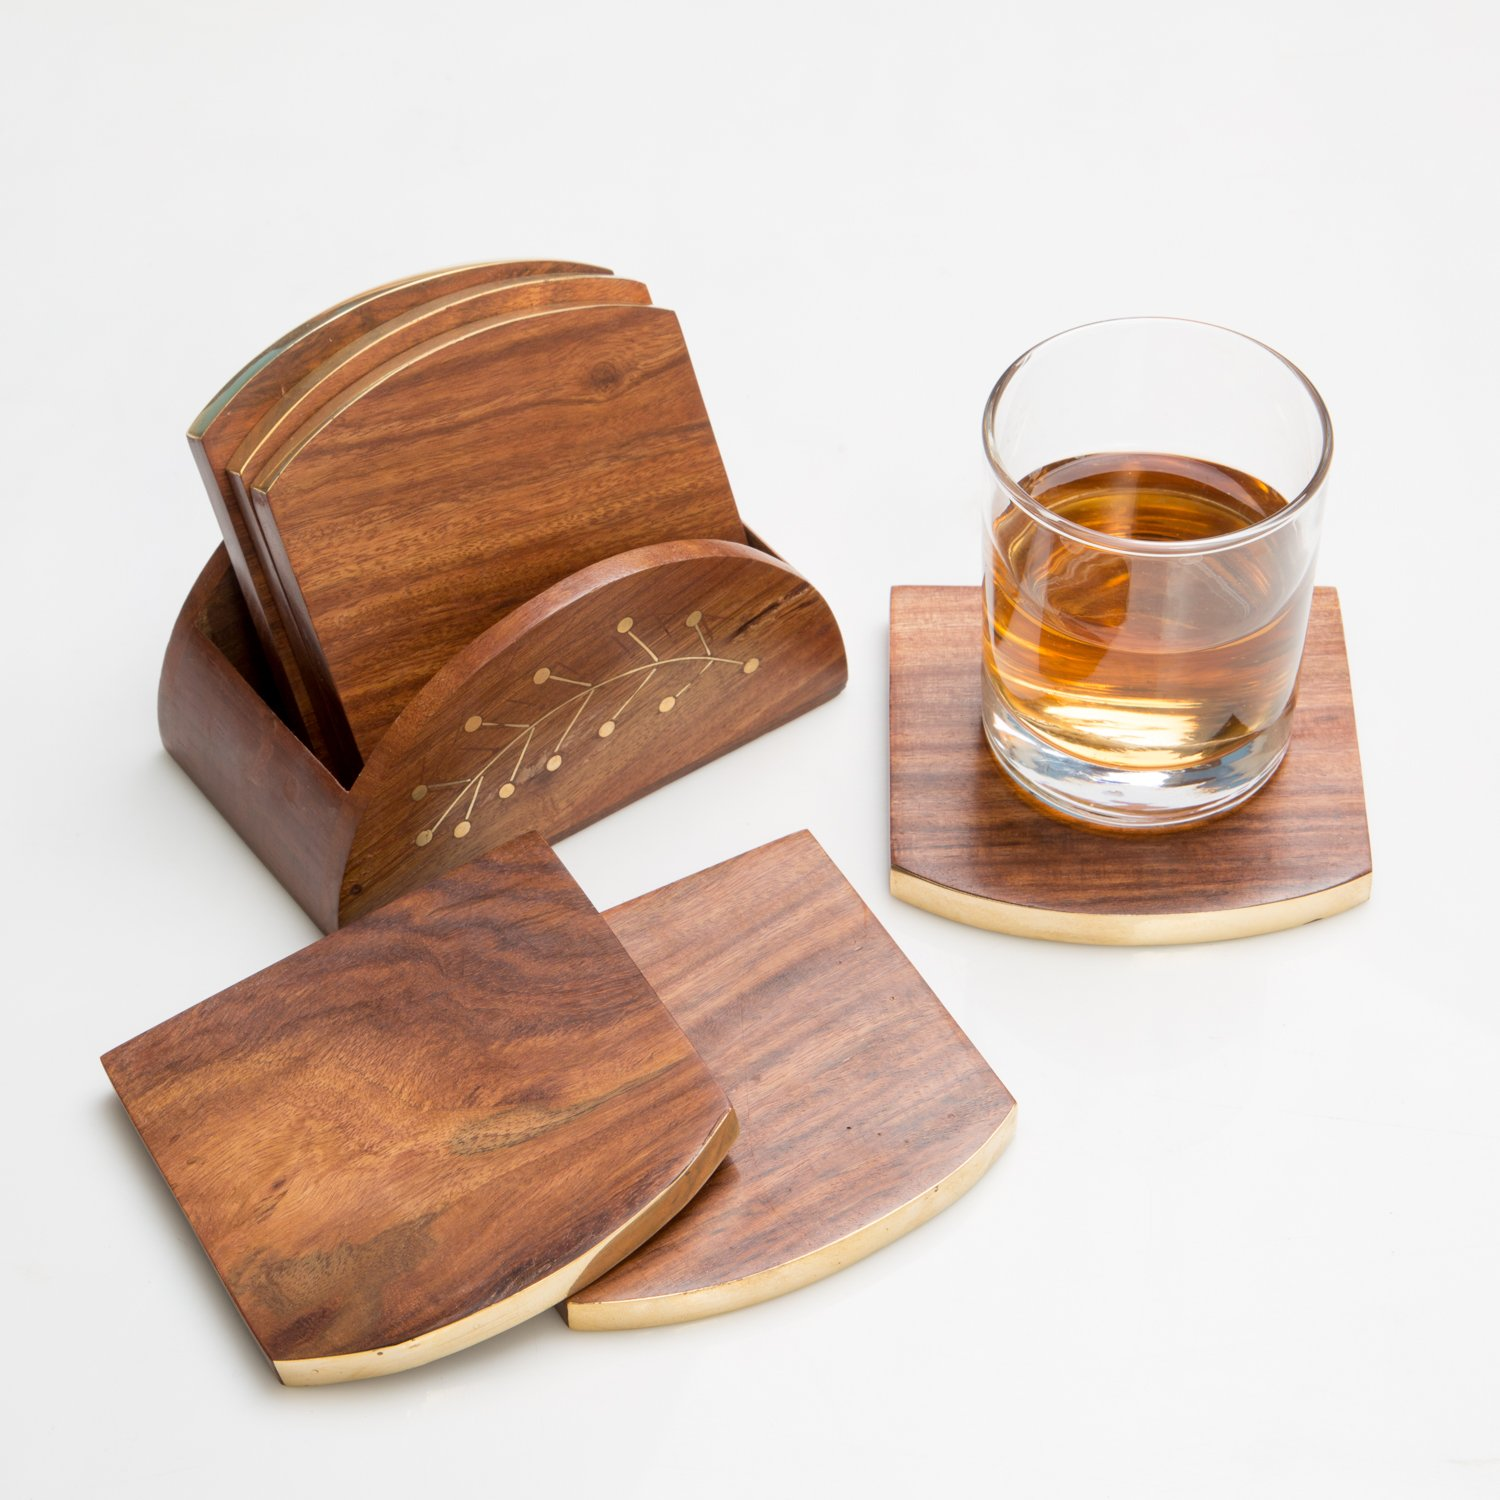 Rusticity Wood Cool Coaster Set of 6 - Loaf design | Handmade | (2.25x2.25 in)